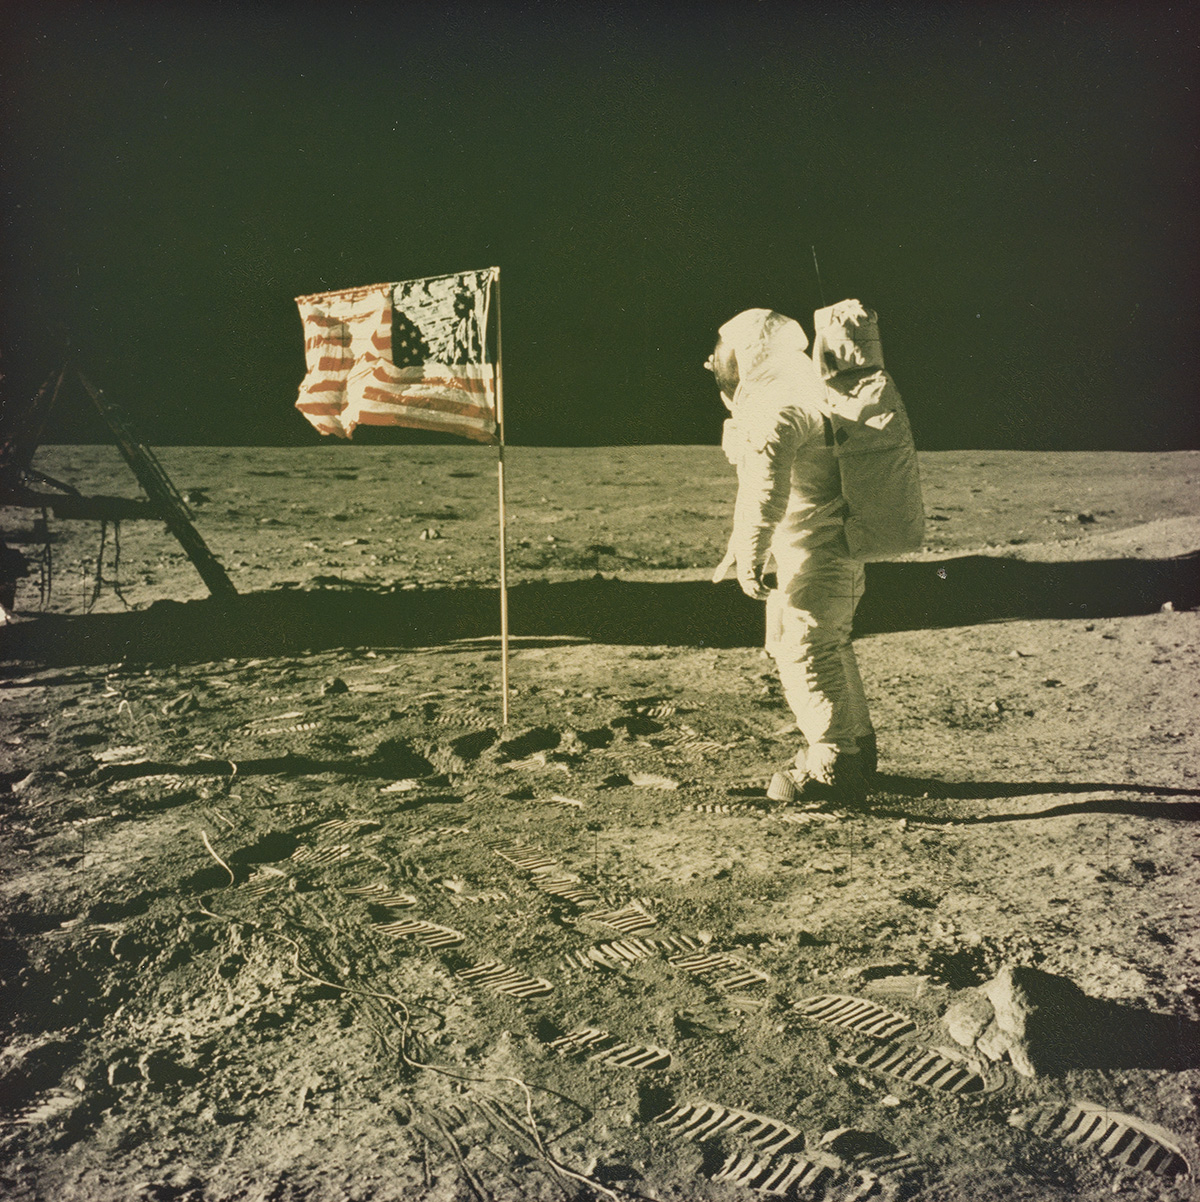 (APOLLO 11 MOON LANDING) Presentation album with 20 iconic photographs depicting the Apollo 11 Mission, featuring breathtaking views of